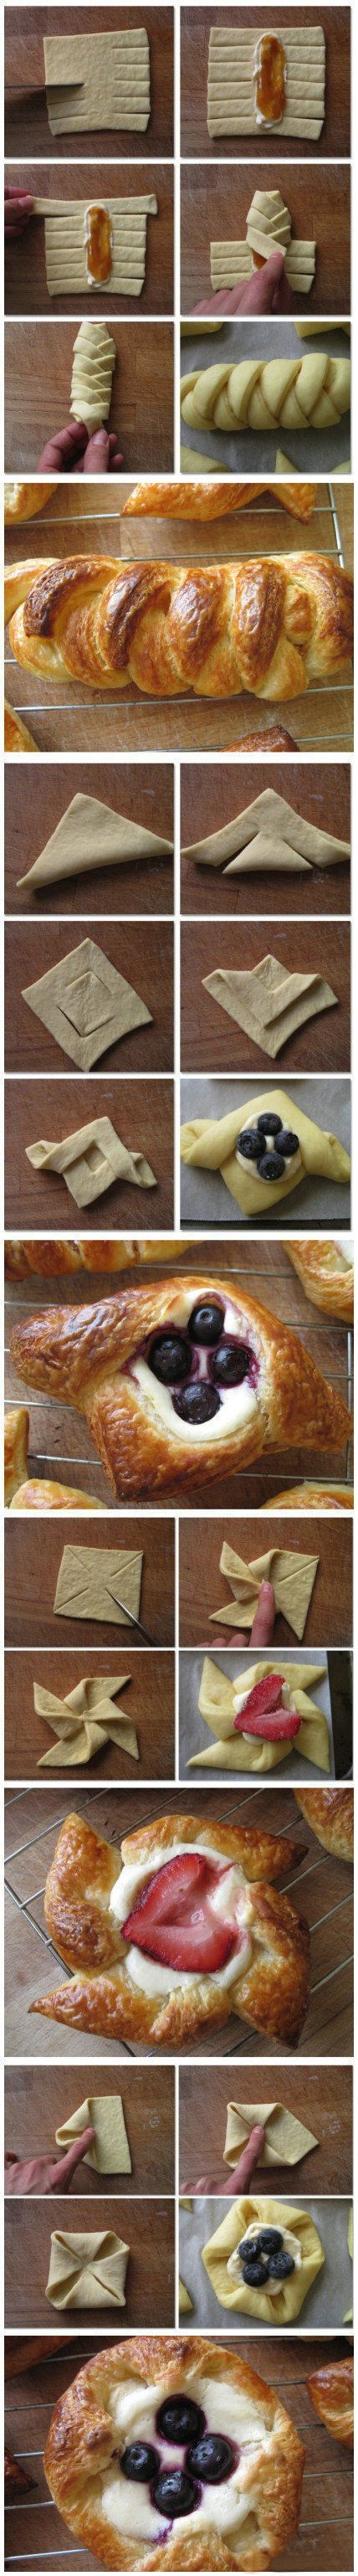 DIY Stuffed Bread Pictures, Photos, and Images for Facebook, Tumblr, Pinterest, and Twitter